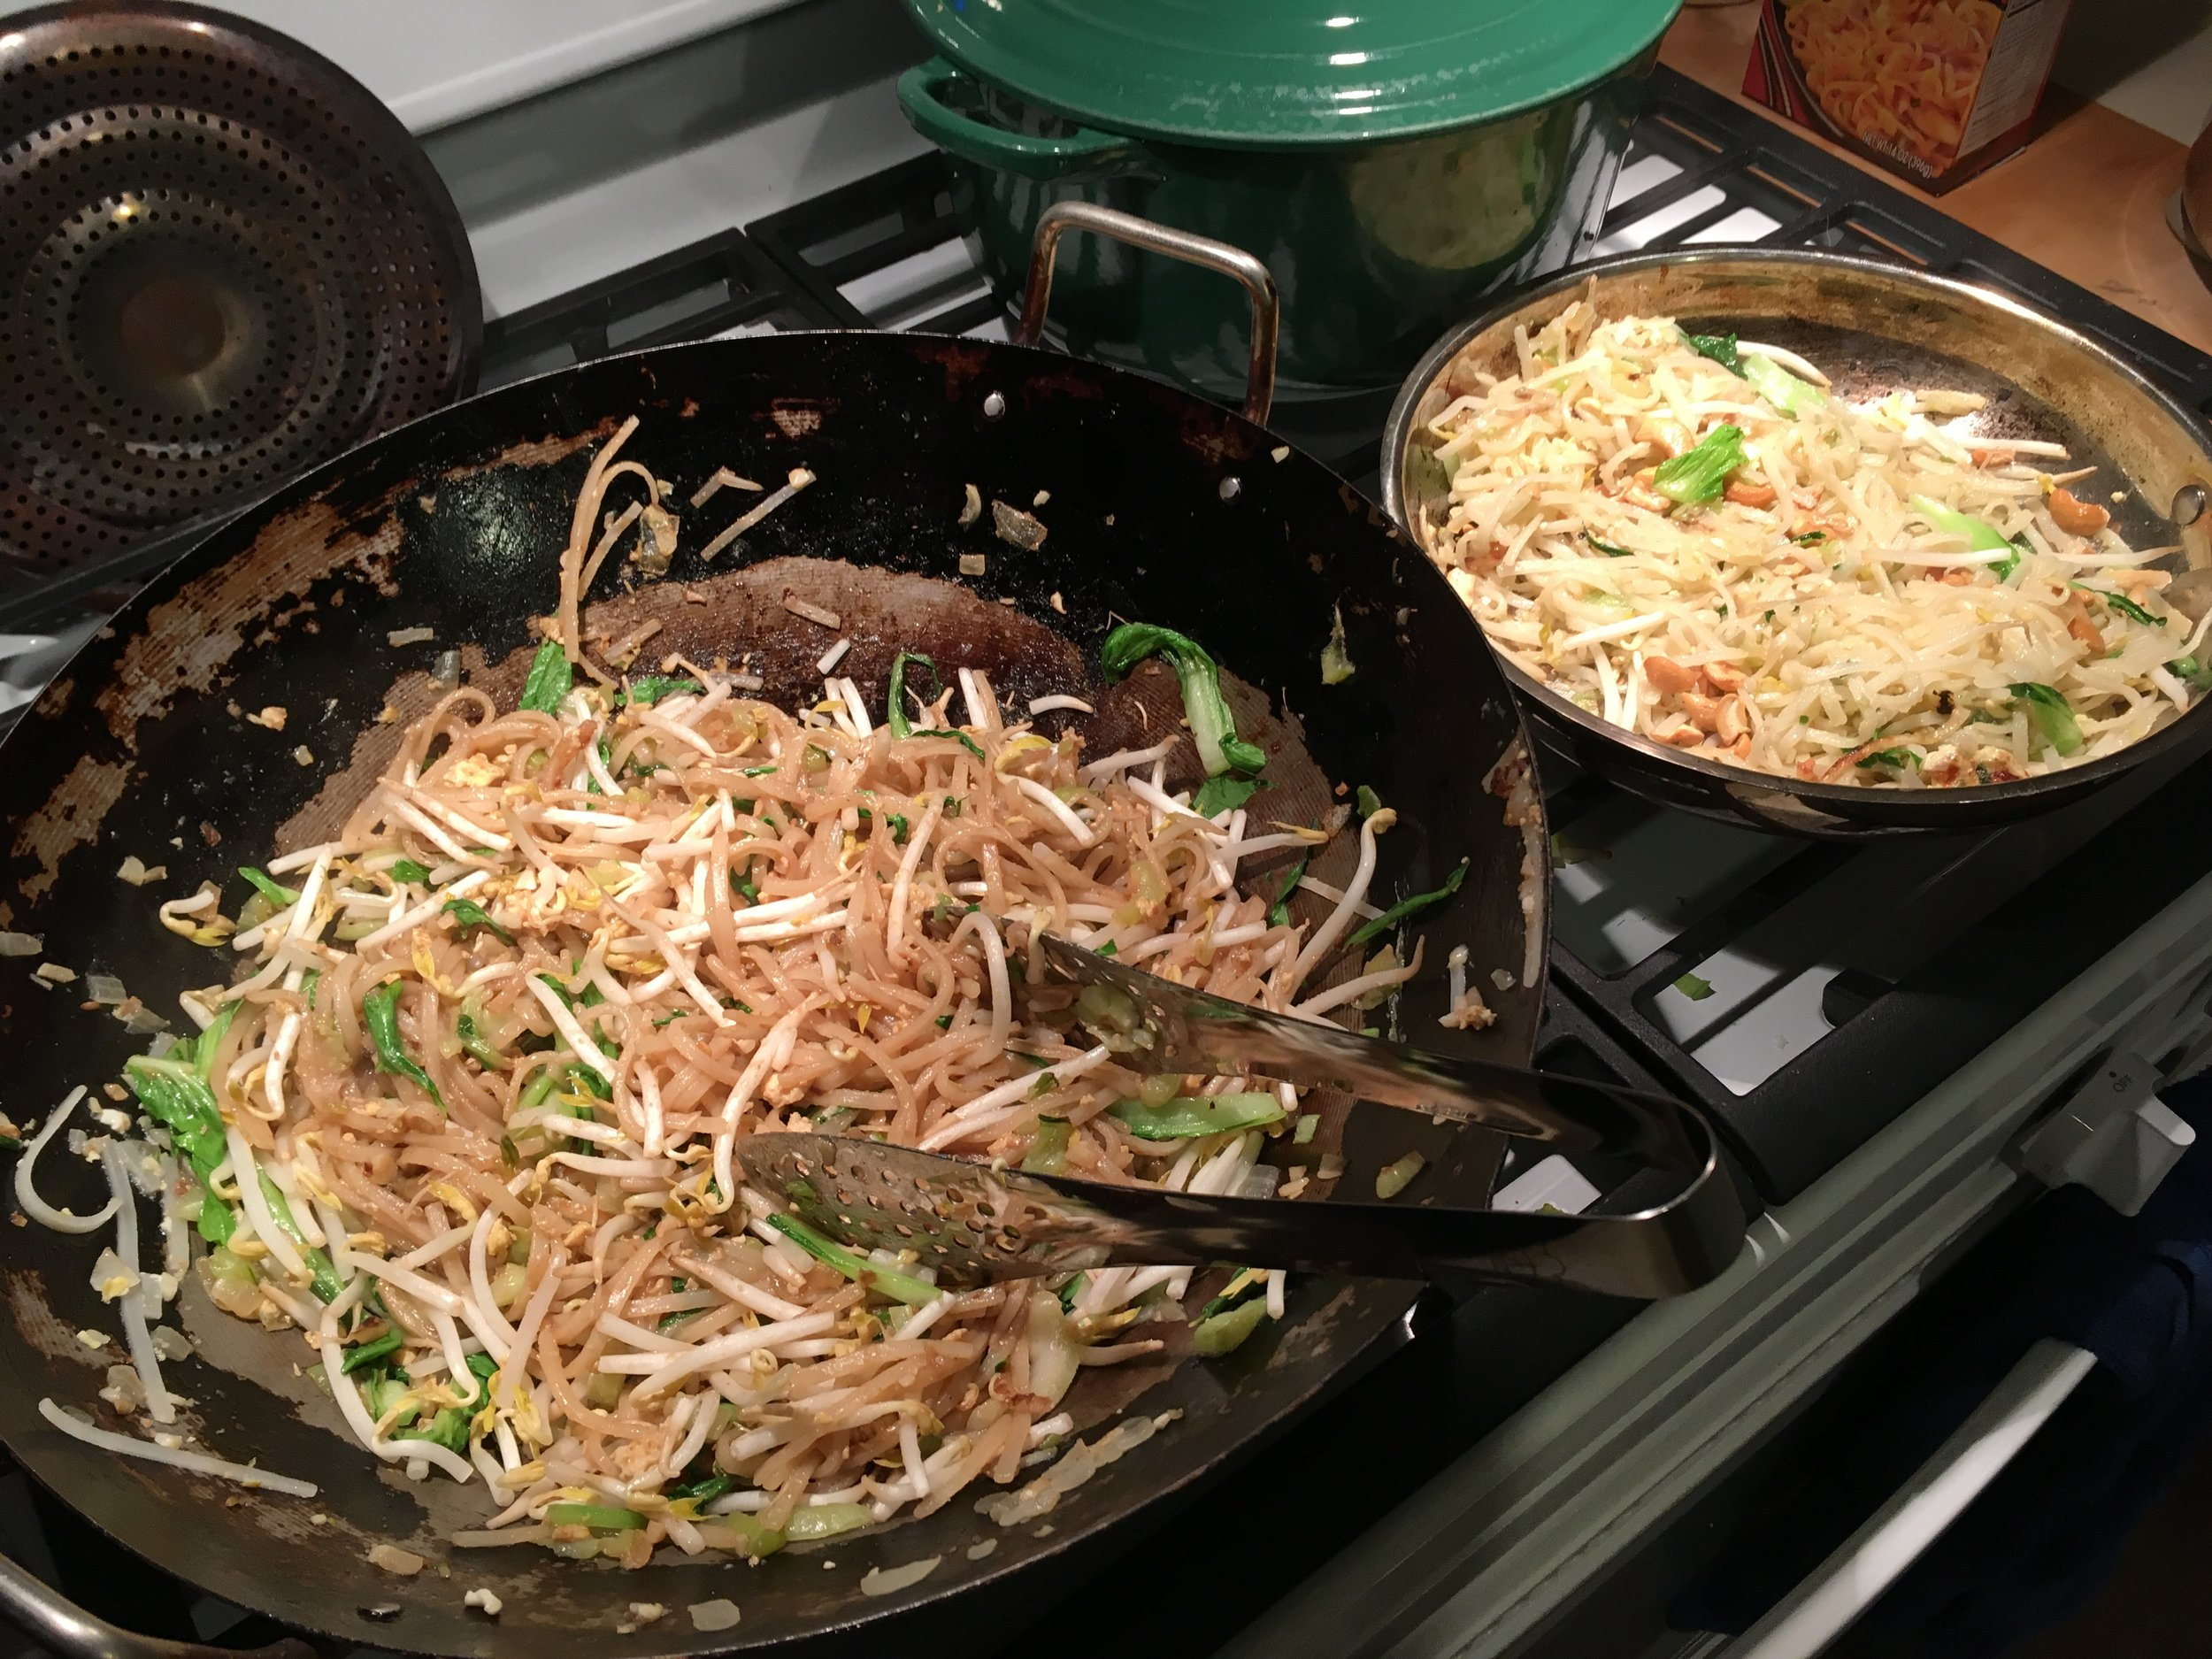 When friends who are Karen and who have lived in a refugee camp in Thailand for 20+ years are coming for Thanksgiving dinner, it makes absolute sense that Pad Thai should be on the menu!